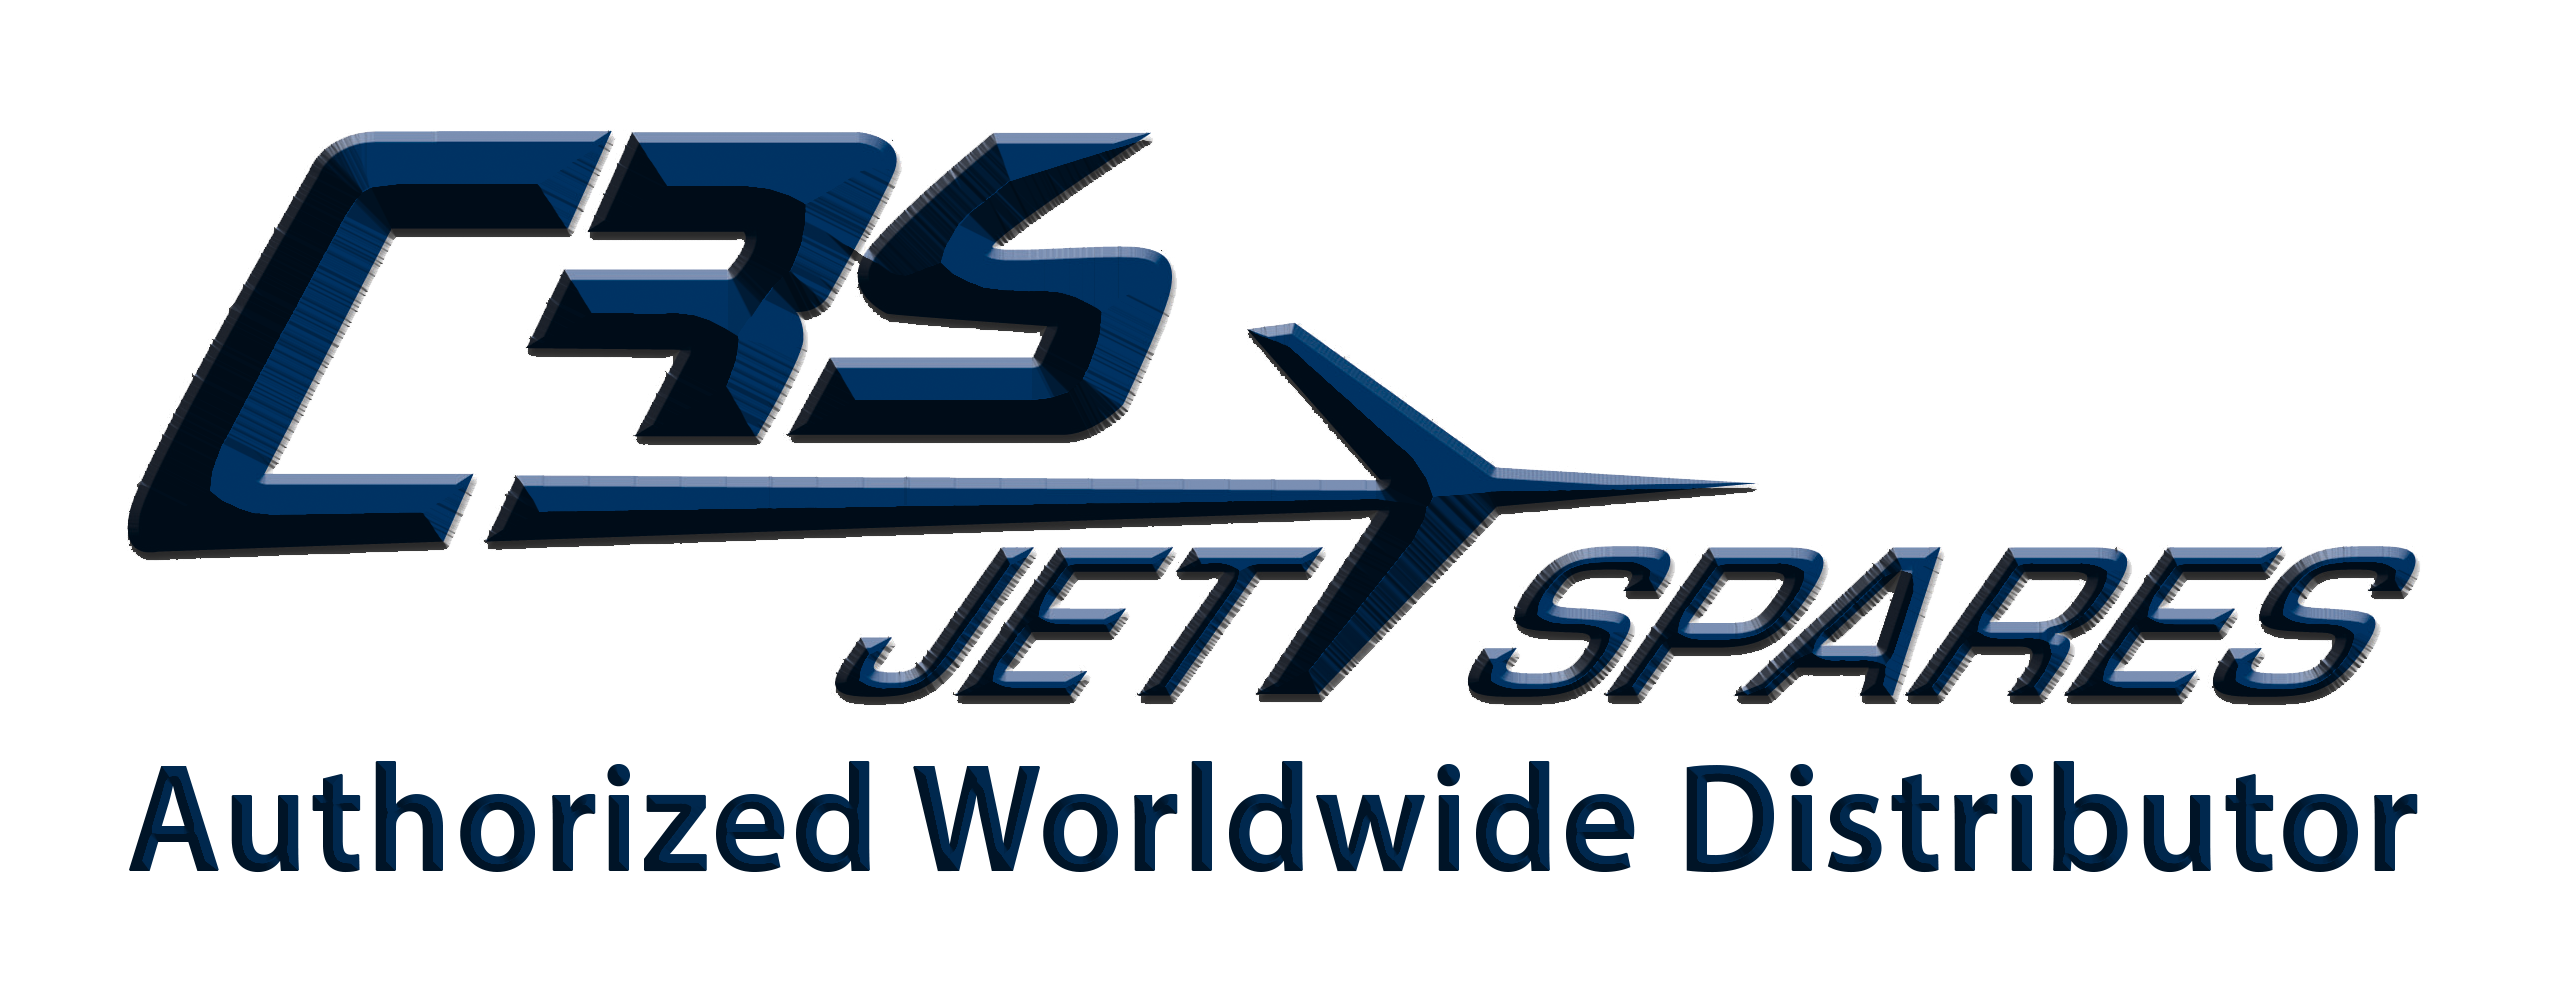 CRS Jet Spares